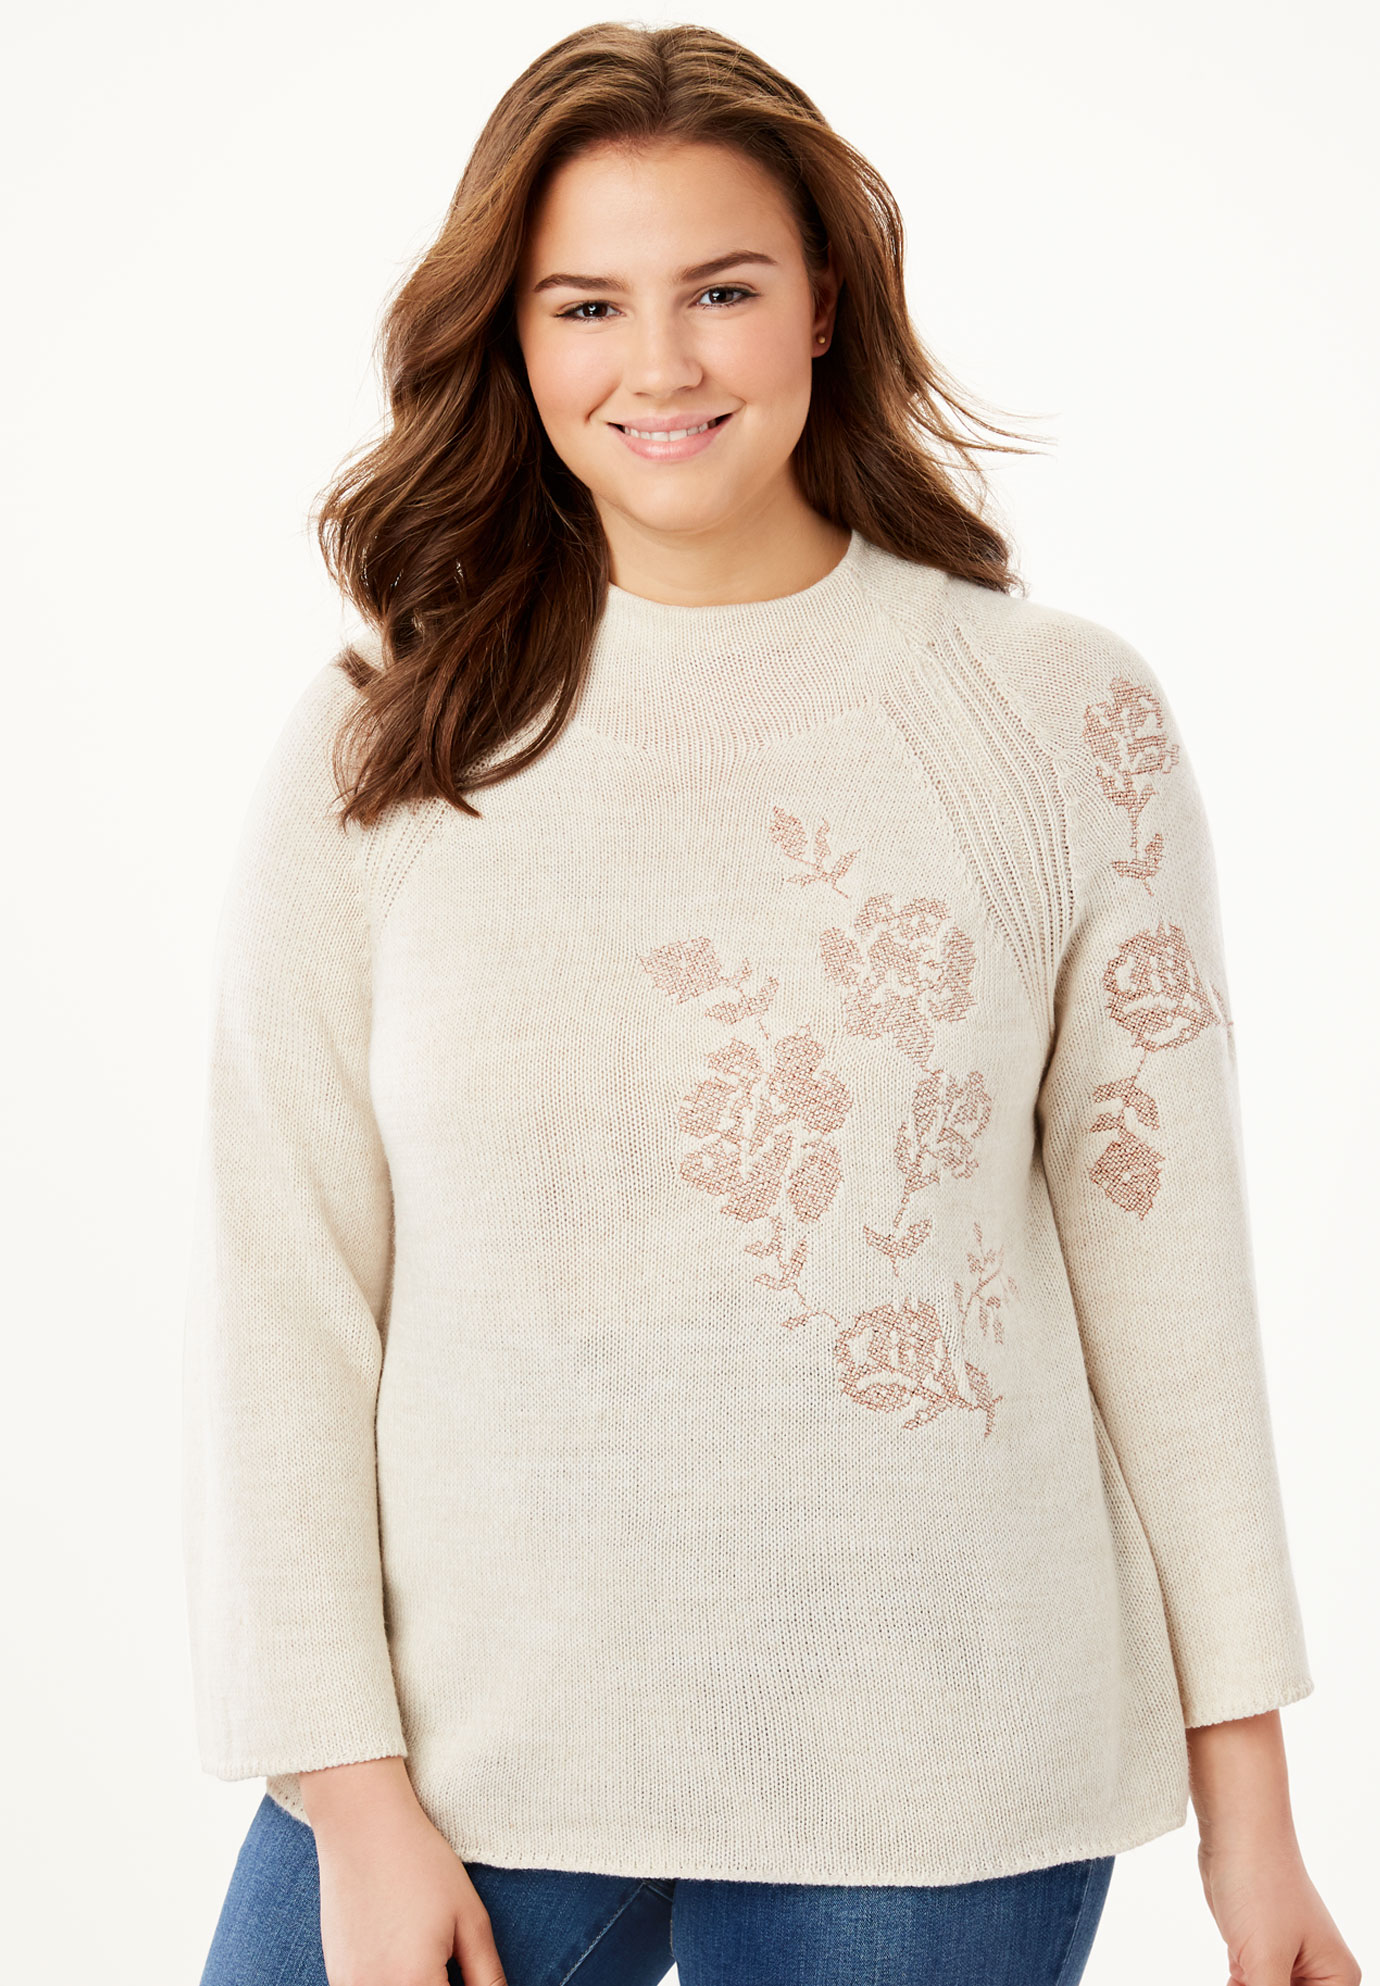 Metallic Flower Embroidered Sweater,